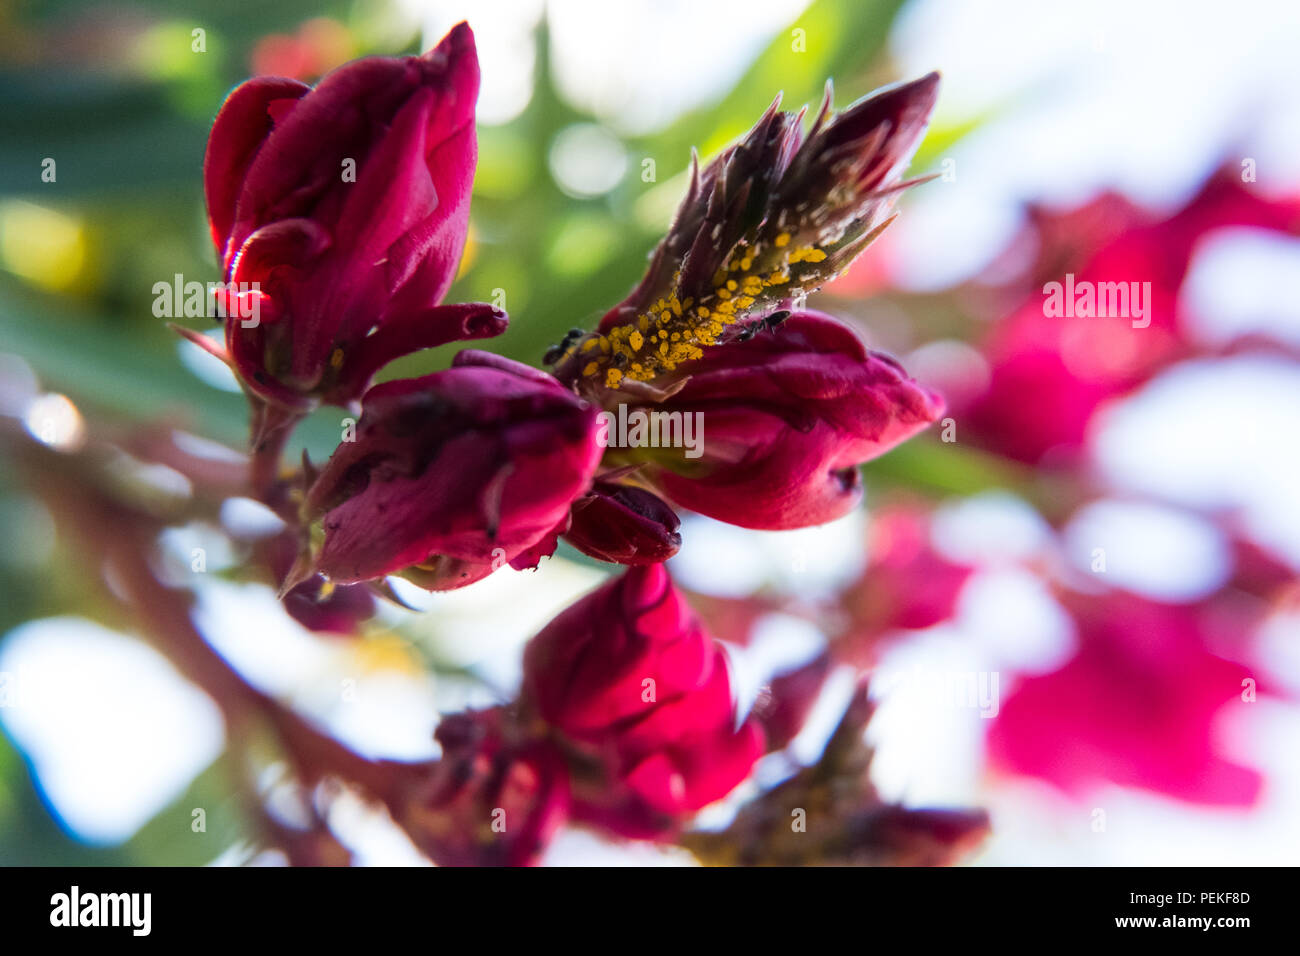 Blooming Red Nerium Oleander Flower And Buds In A Green Garden